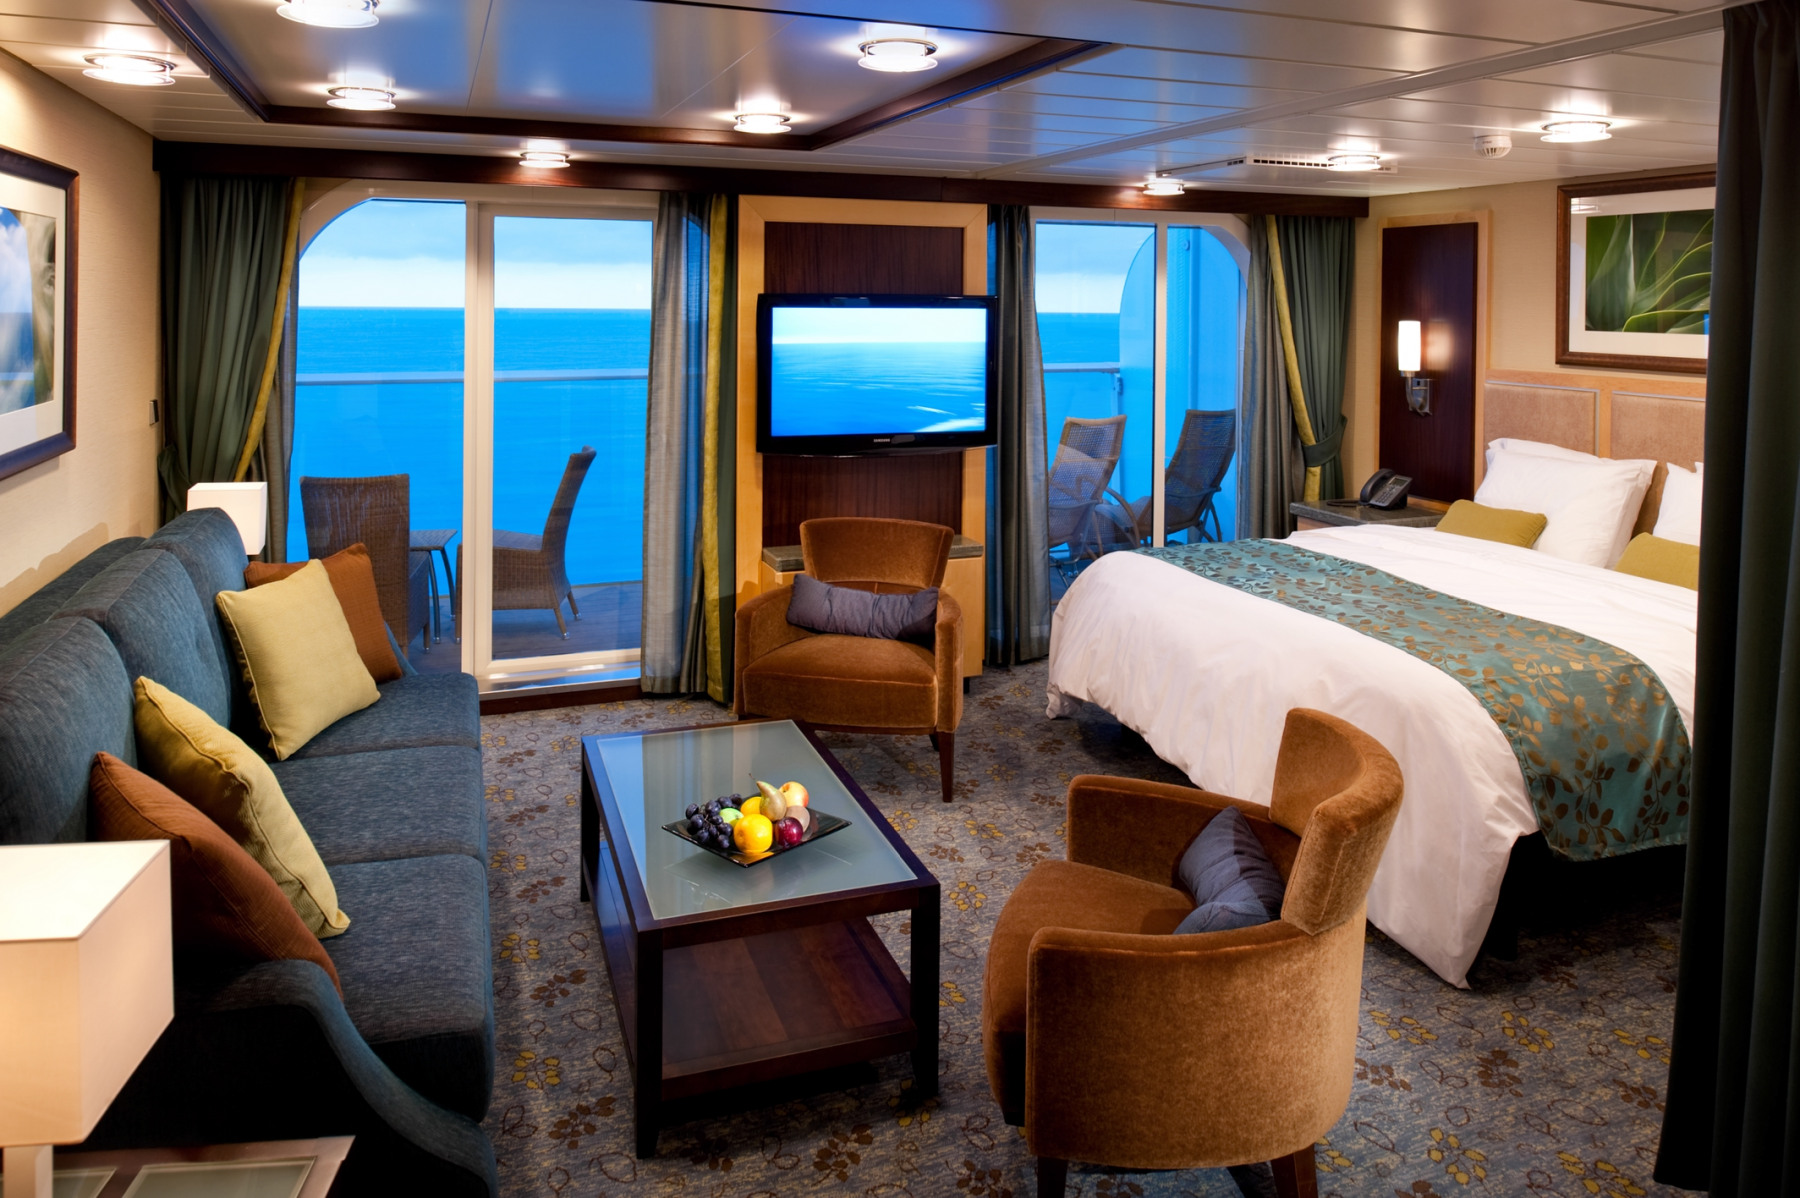 Royal Caribbean International Oasis of the seas accommodation grand suite.jpg